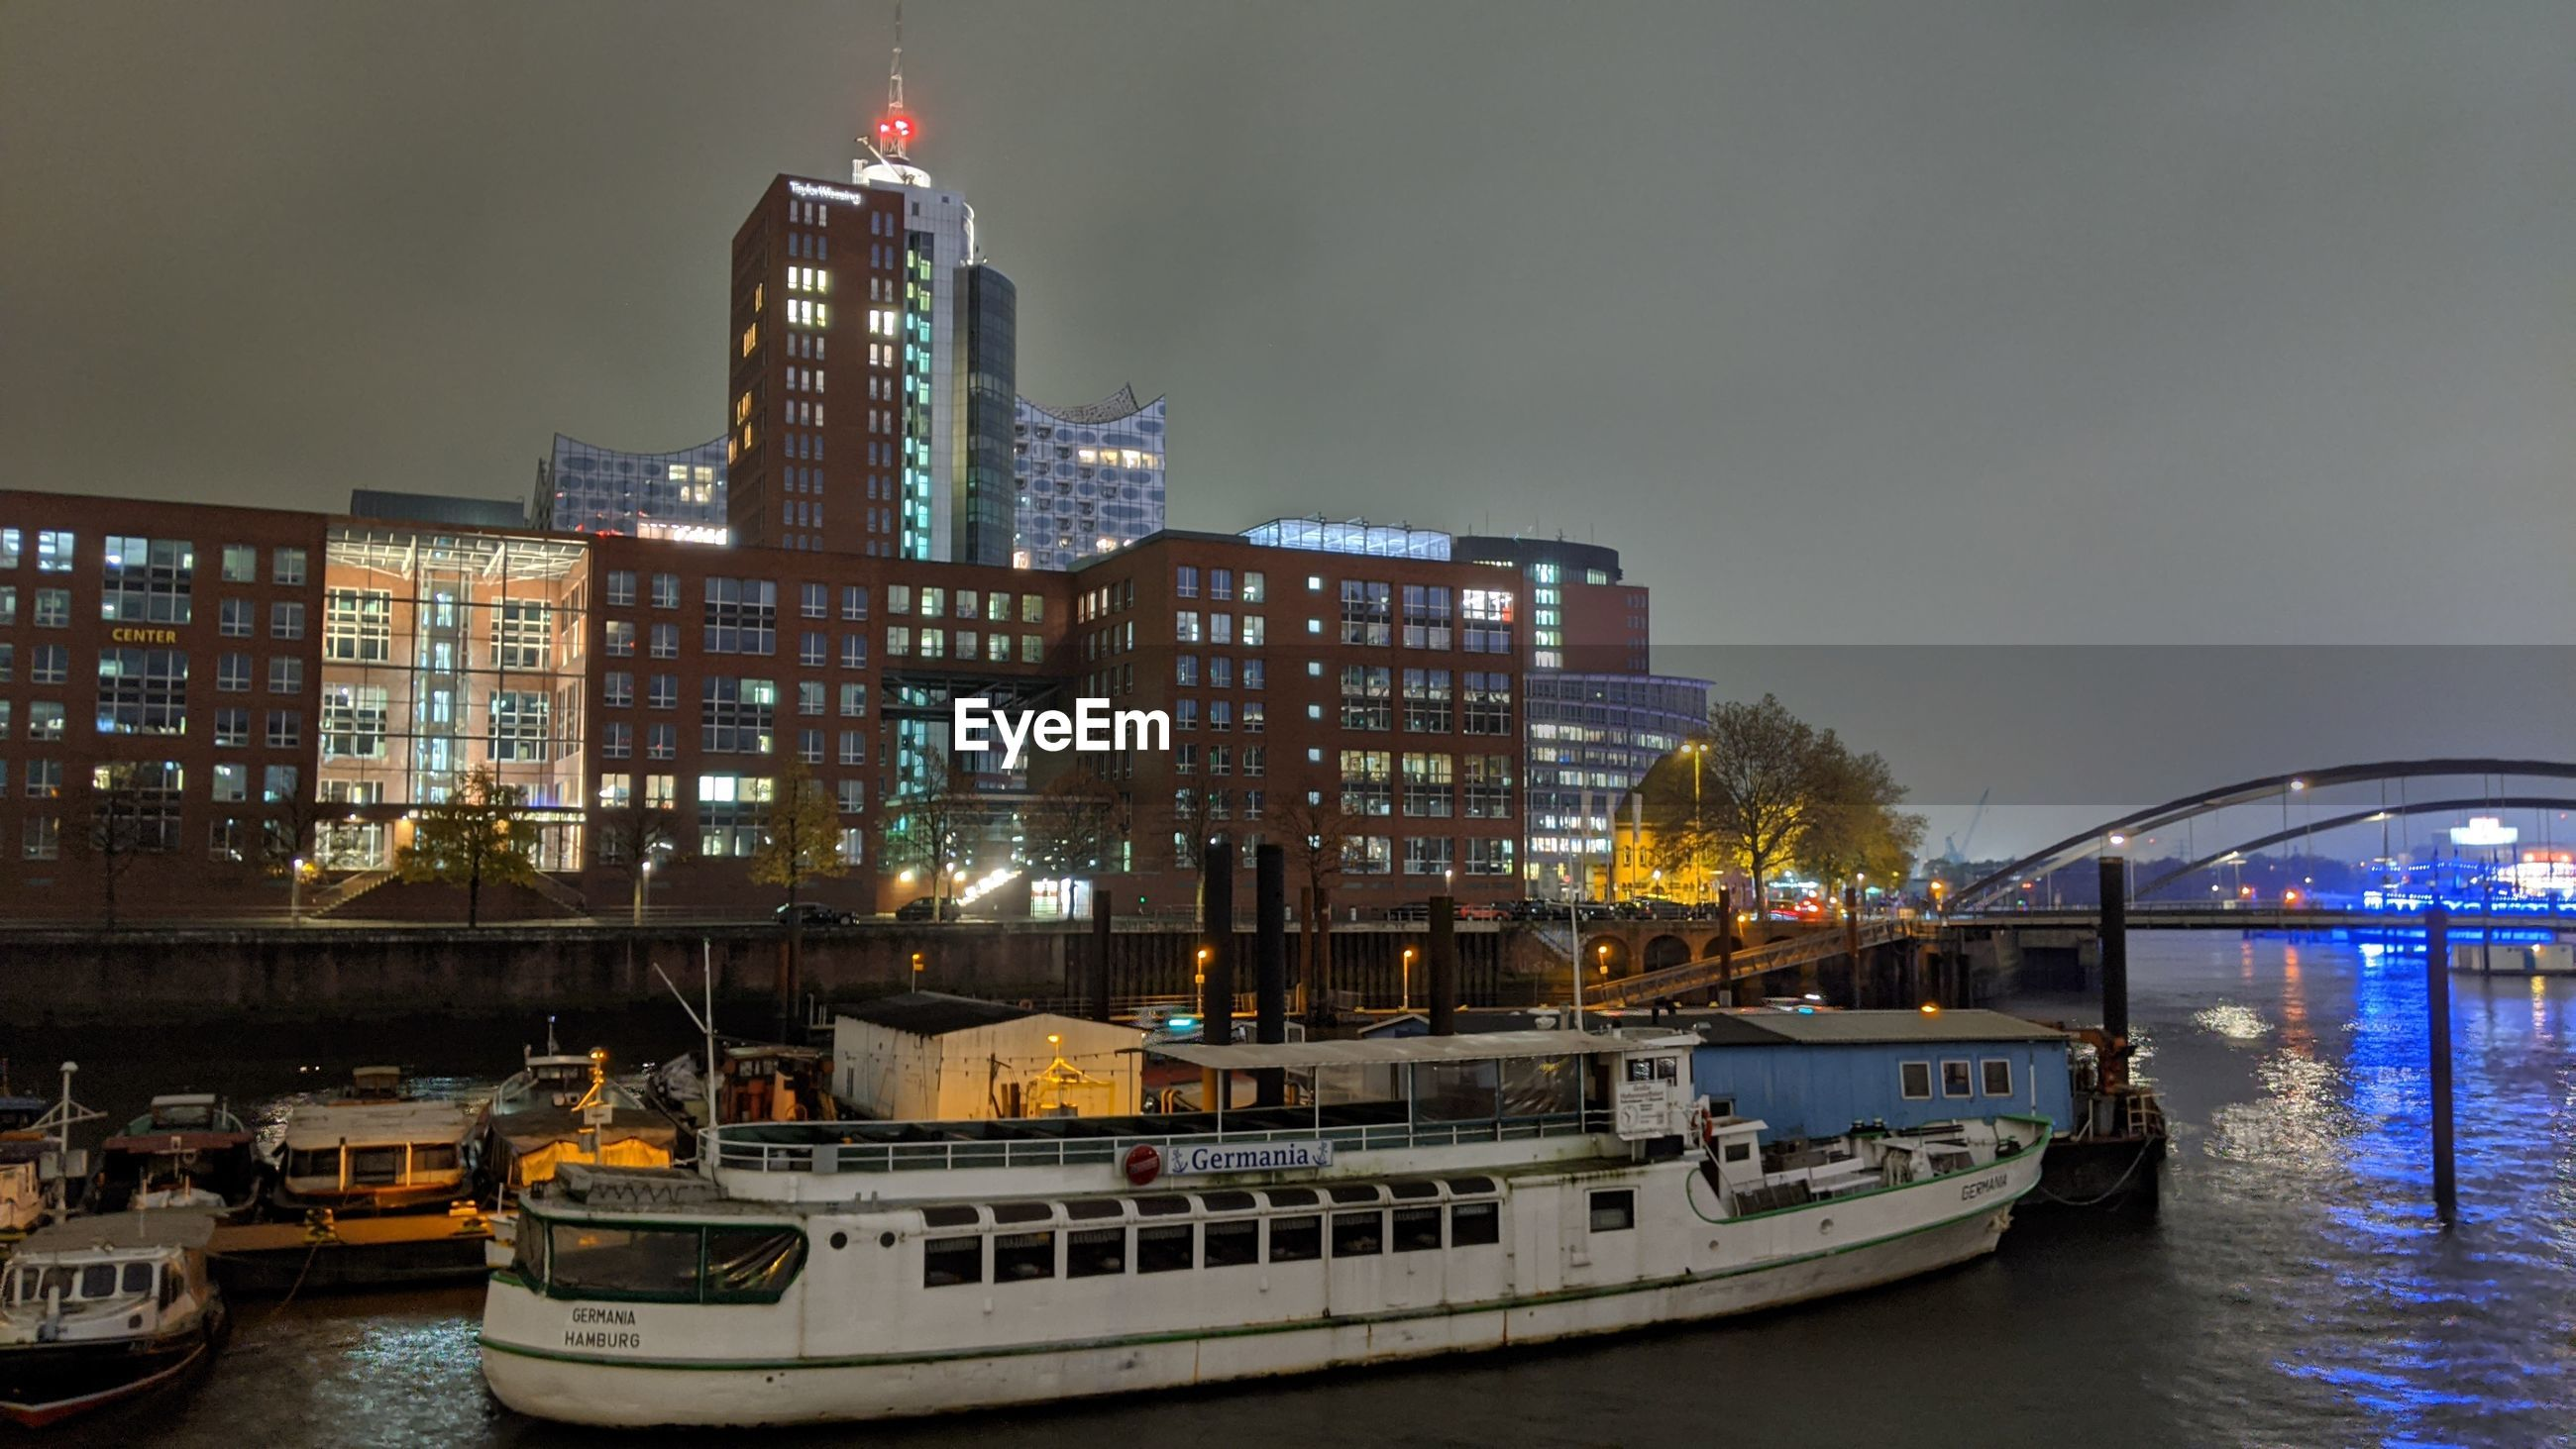 BOATS IN RIVER BY ILLUMINATED BUILDINGS AGAINST SKY